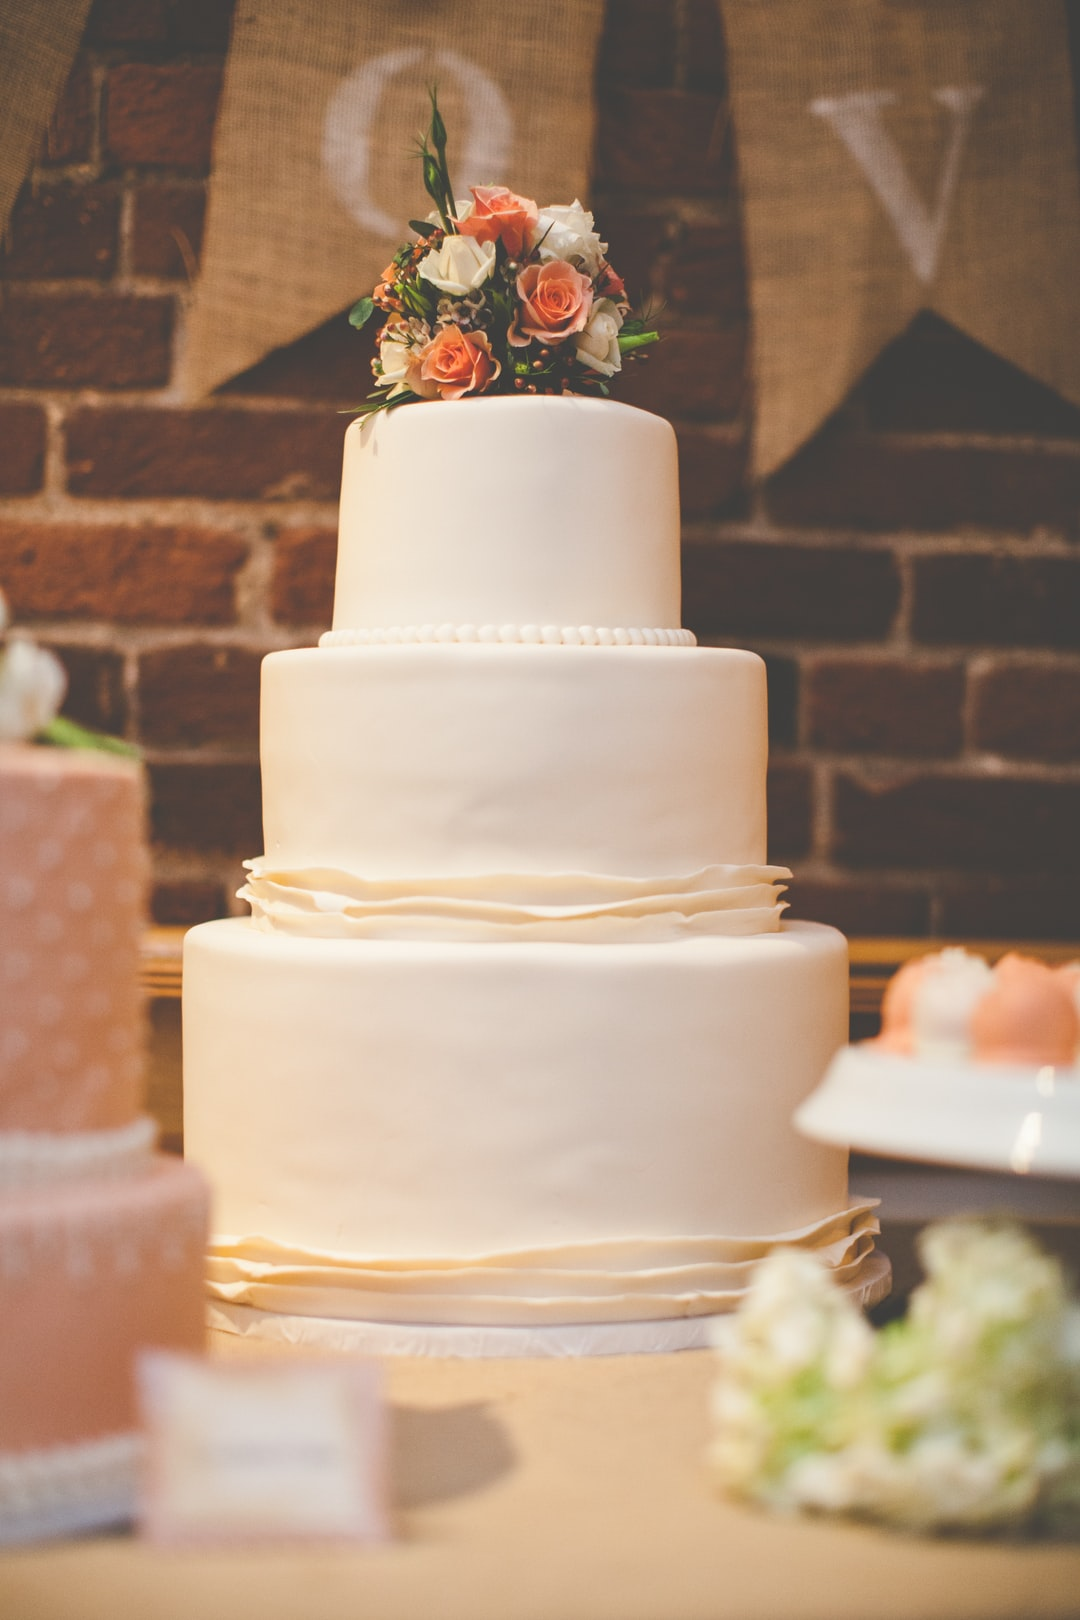 My daughter's wedding cake.  Taken during the reception by the Mother of the Bride.  Me!